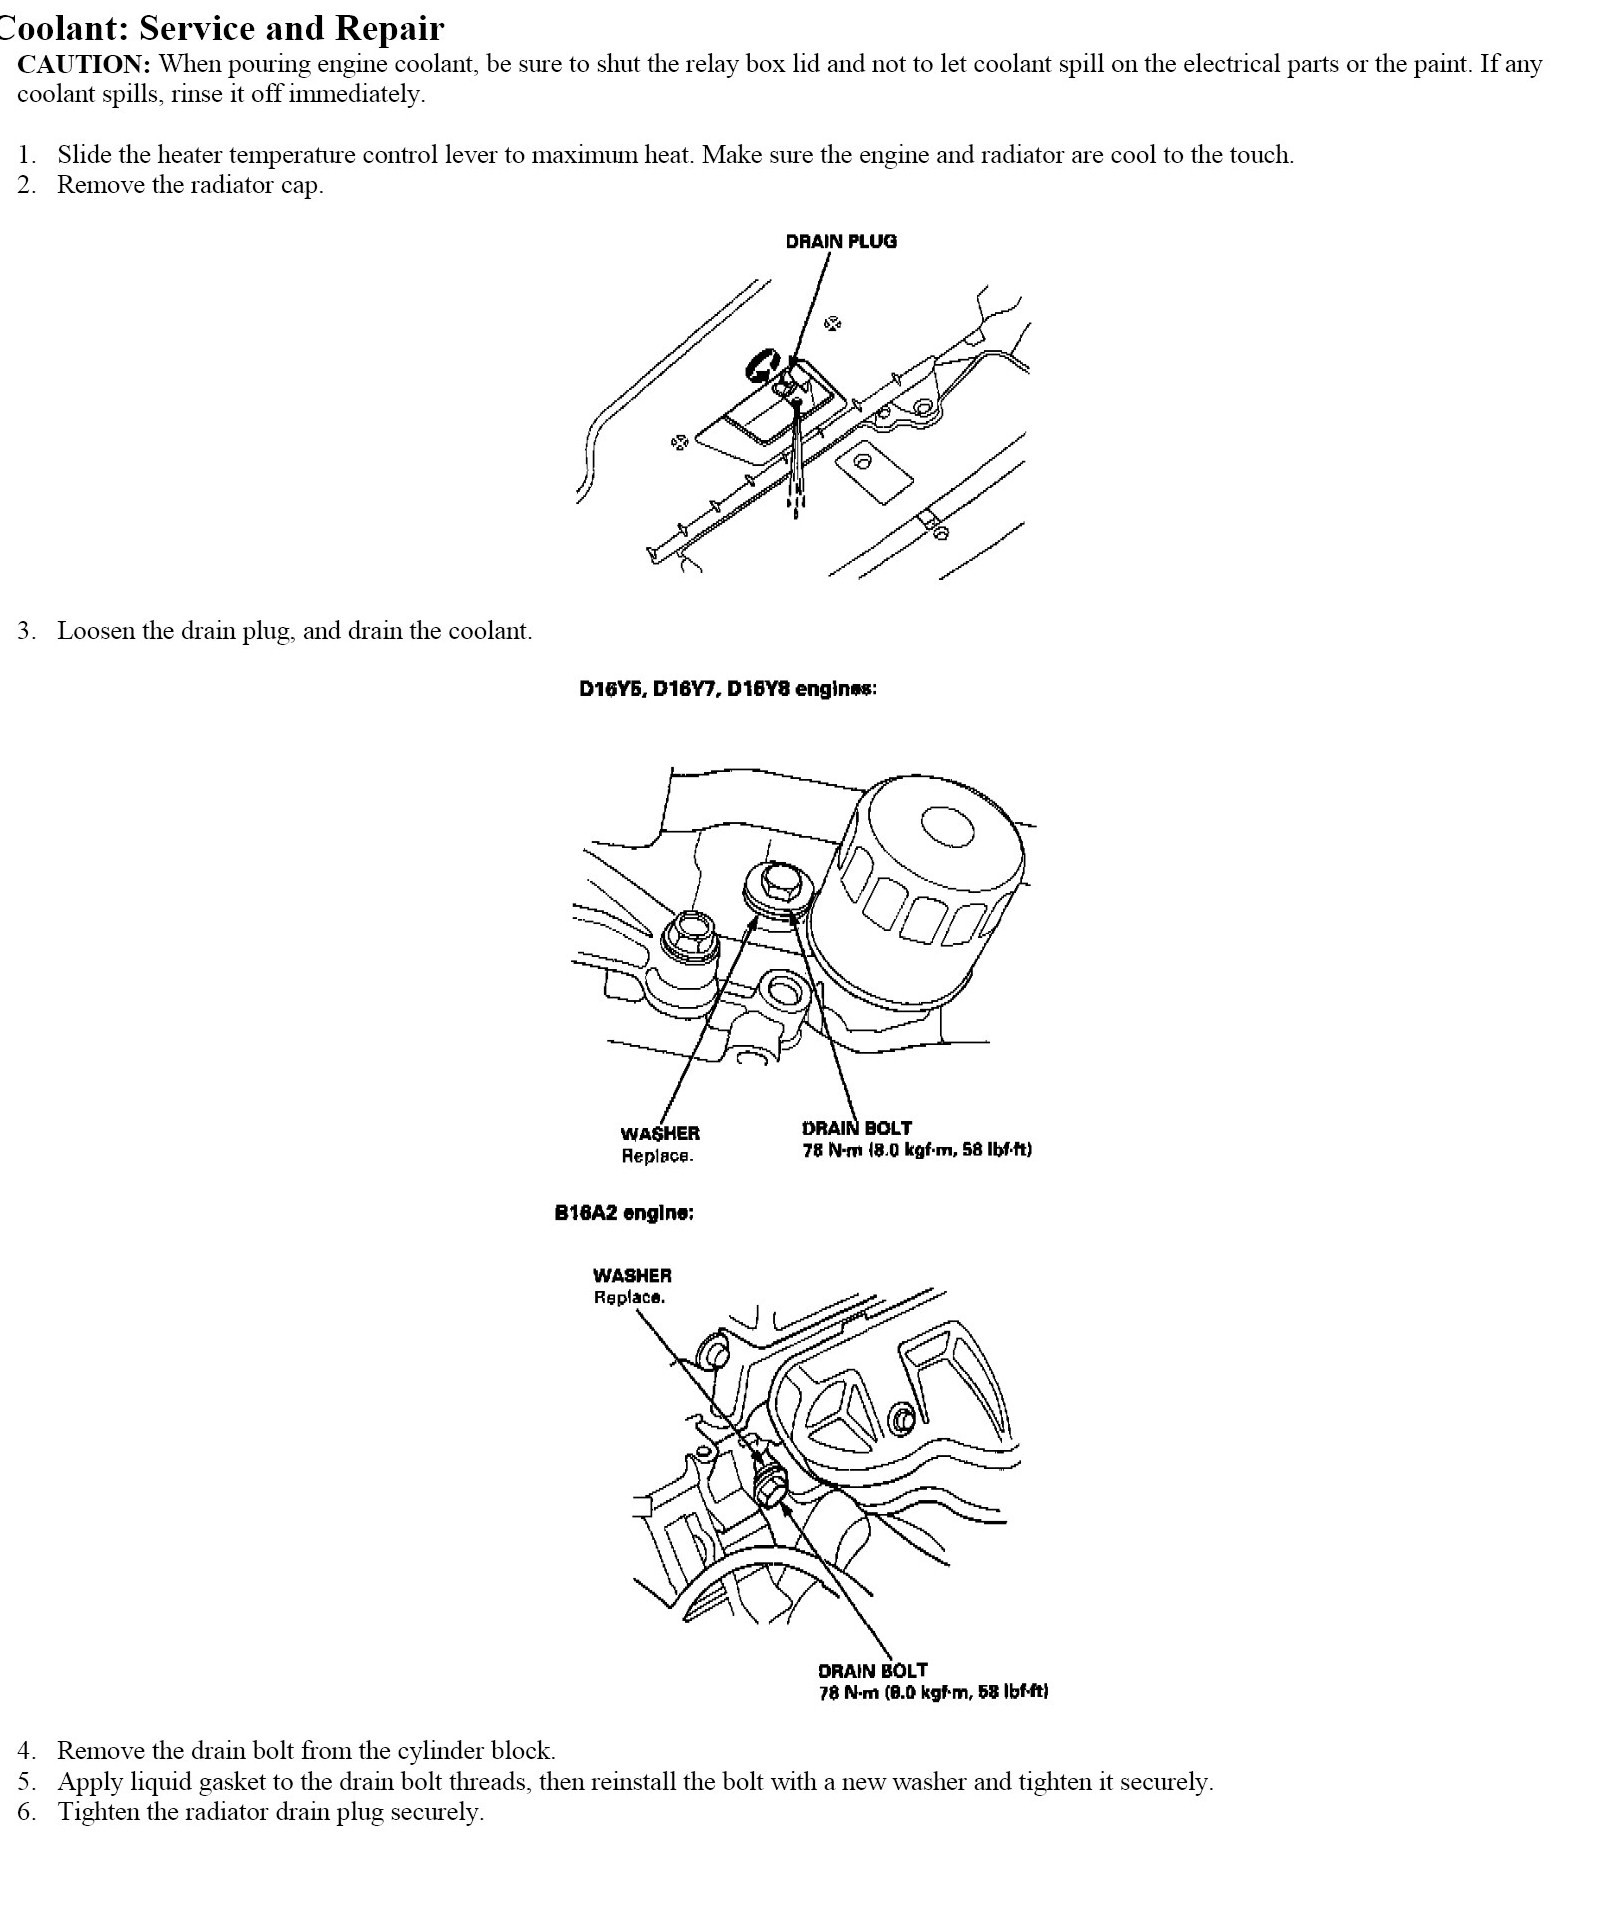 1378140 Headlight Wiring besides 702933 Need Help Lt1 Water Pump in addition Id Part 78138 further Fuel Rail Pressure Sensor 2004 Ford F150 Wiring Diagram moreover RepairGuideContent. on 2007 cadillac escalade wiring diagrams